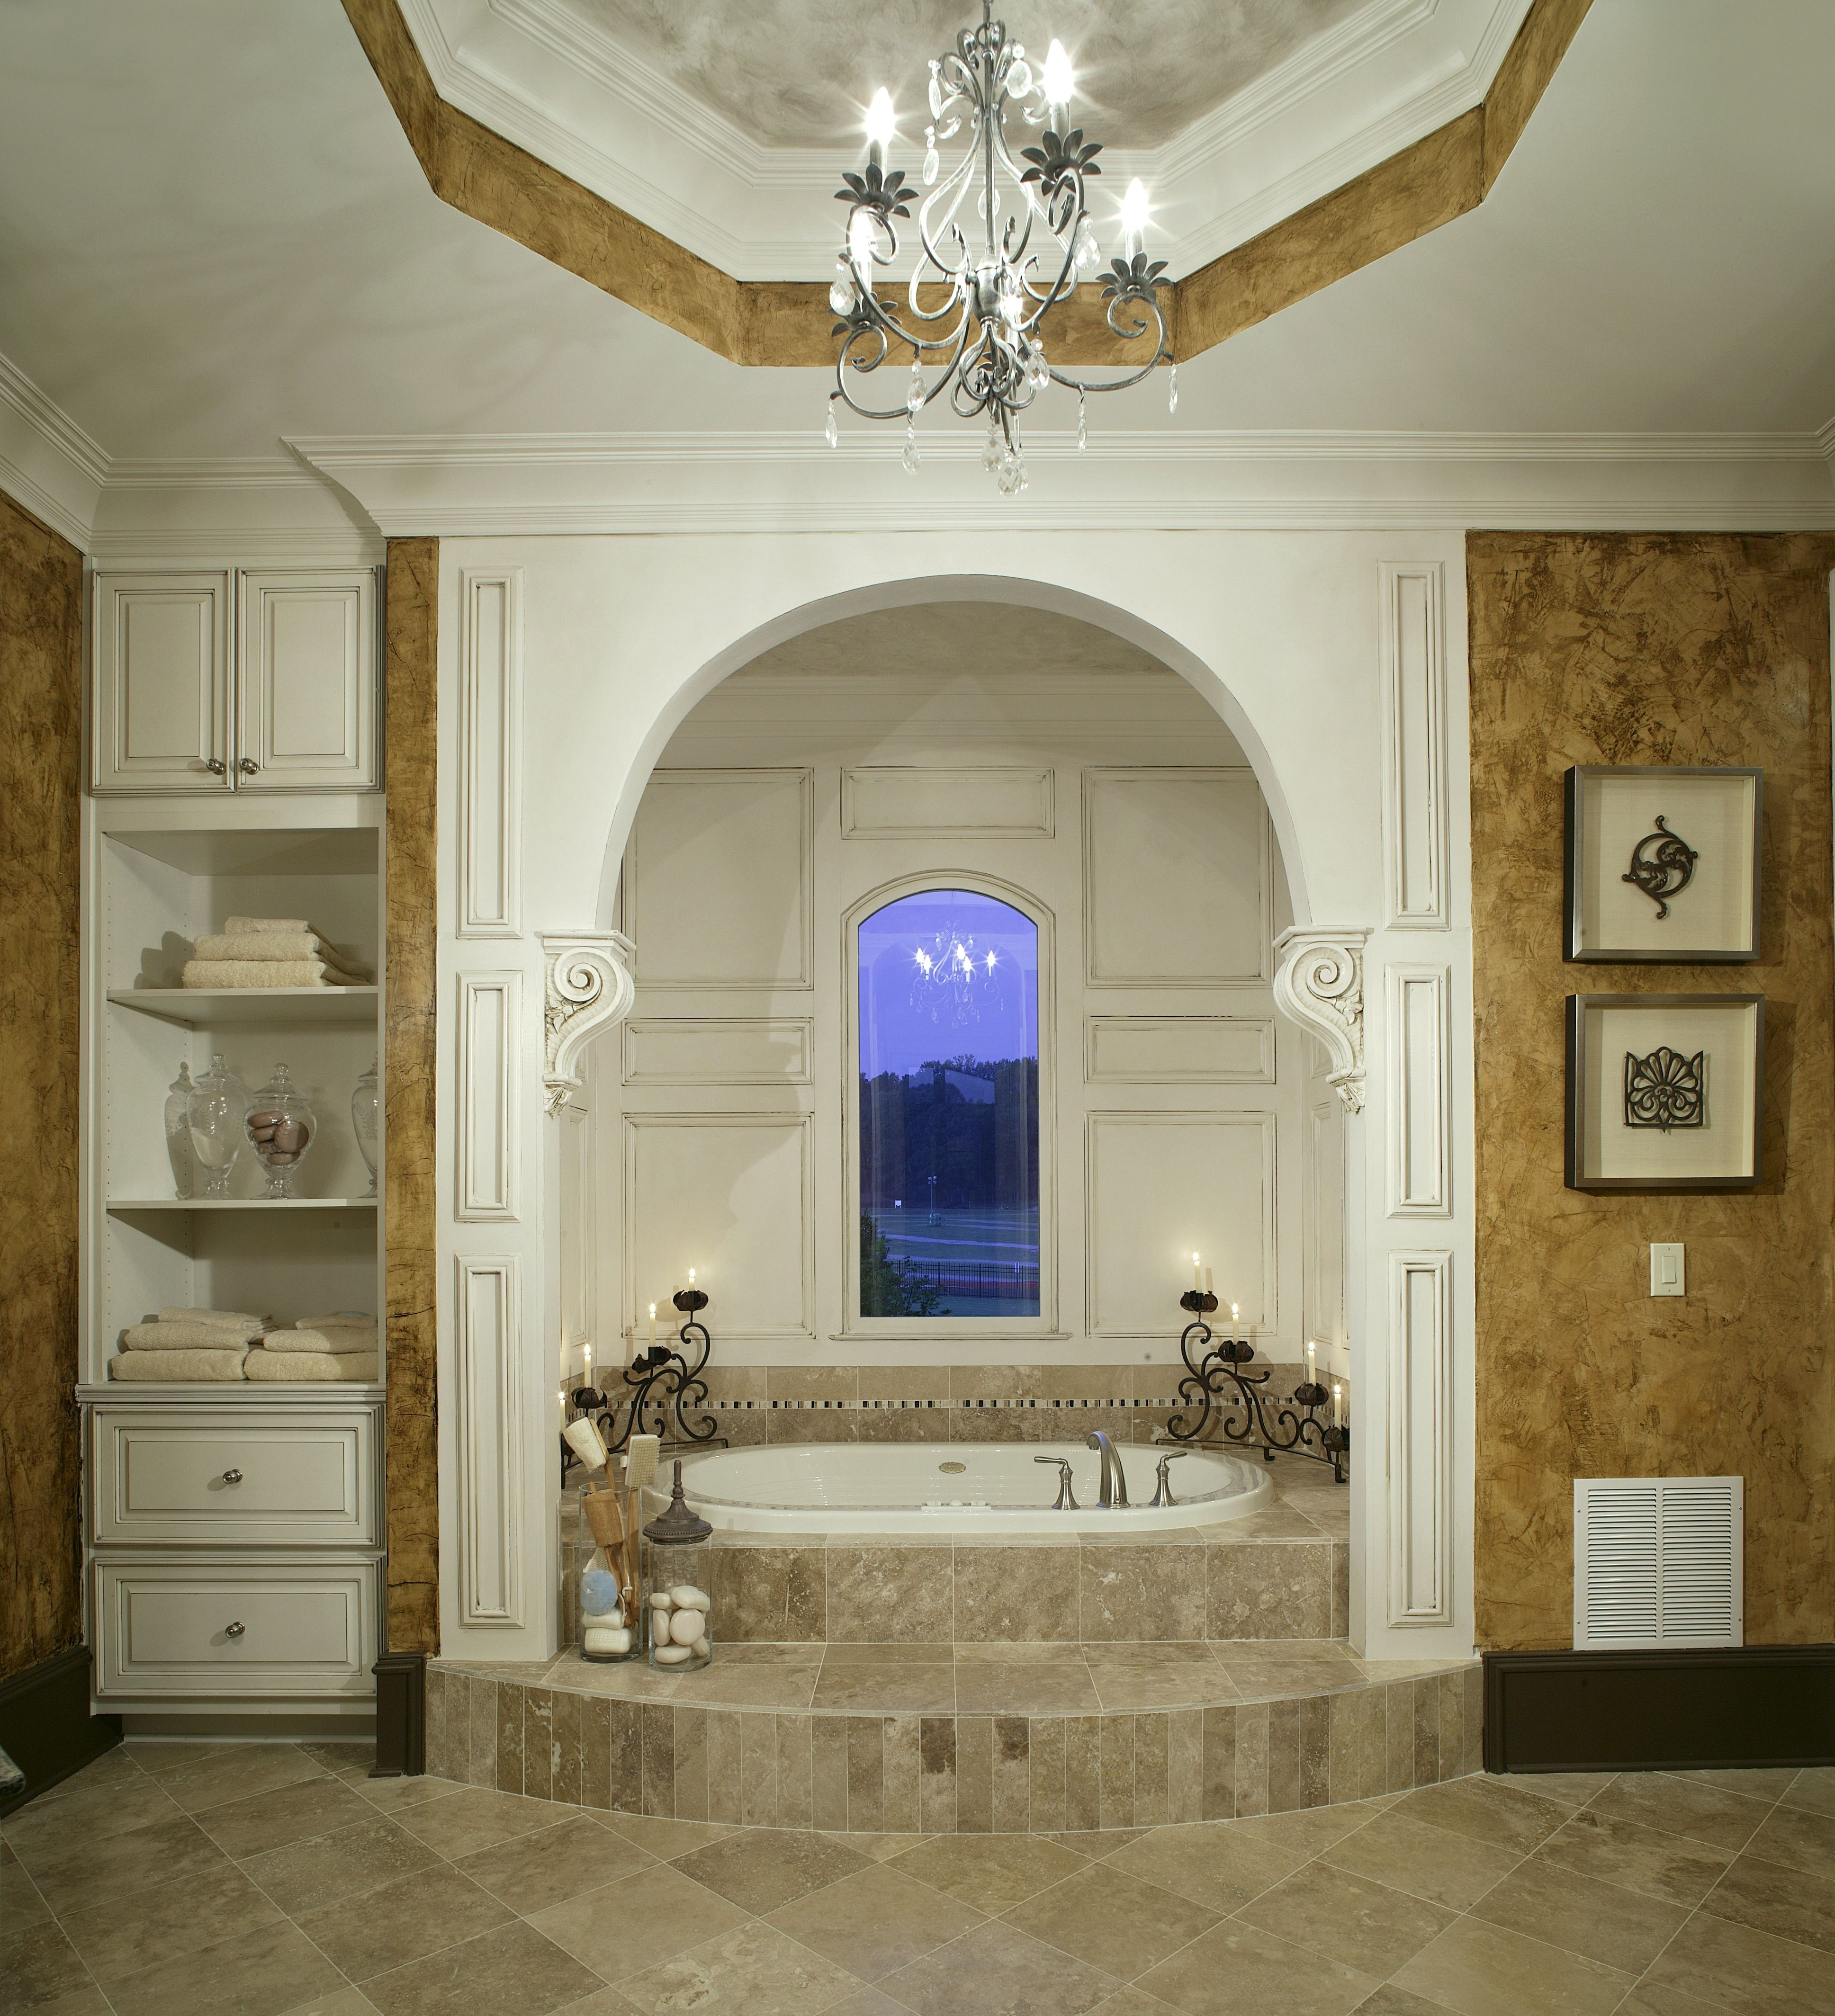 Renovated bathroom with antique white painted cabinets, a brown tile floor and of course, a large soaking tub.